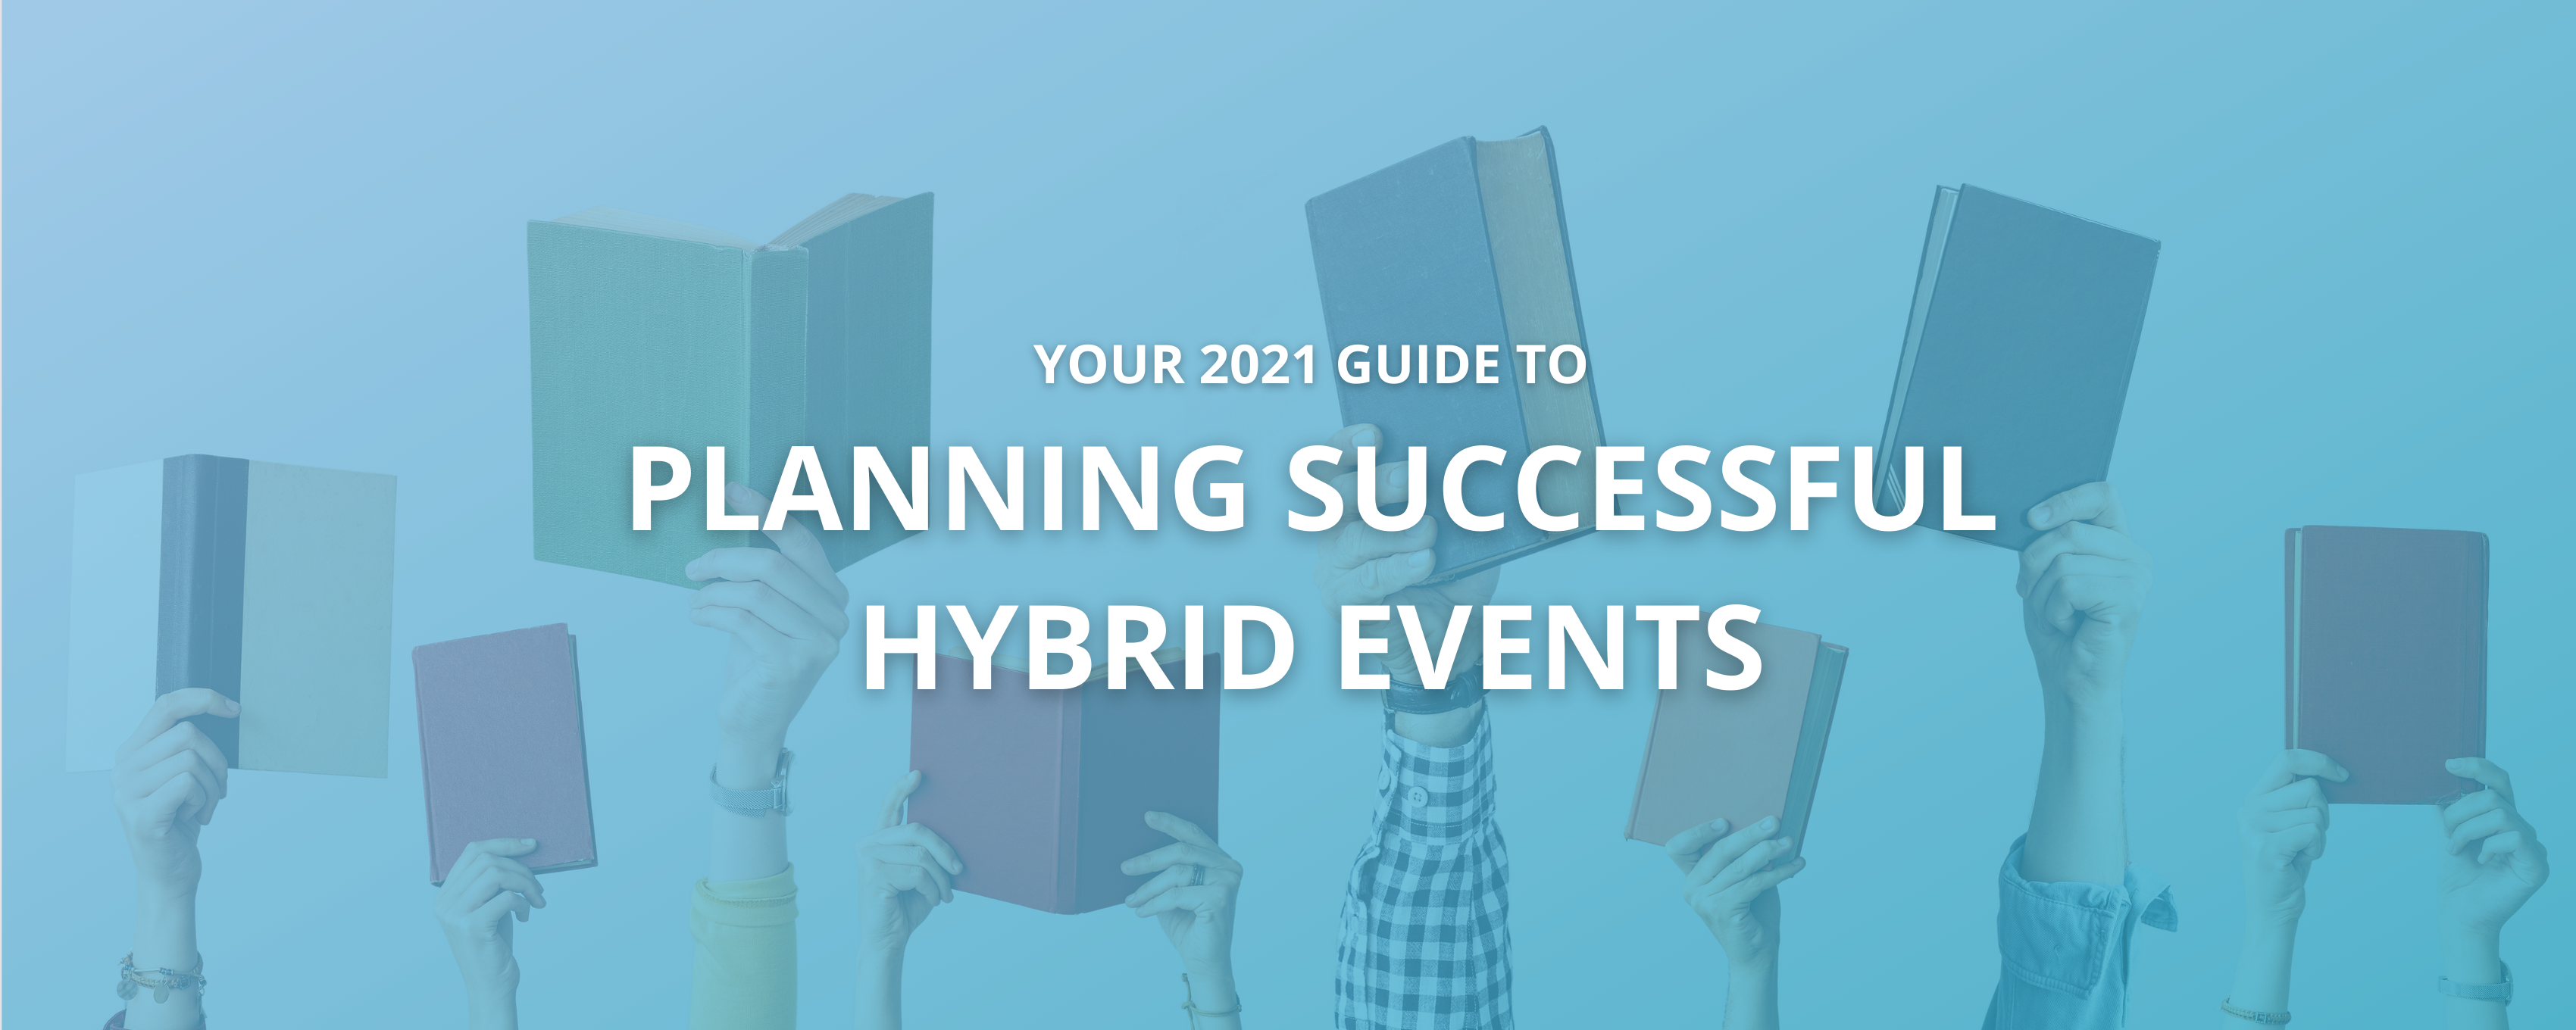 Your Guide to Planning Successful Hybrid Events